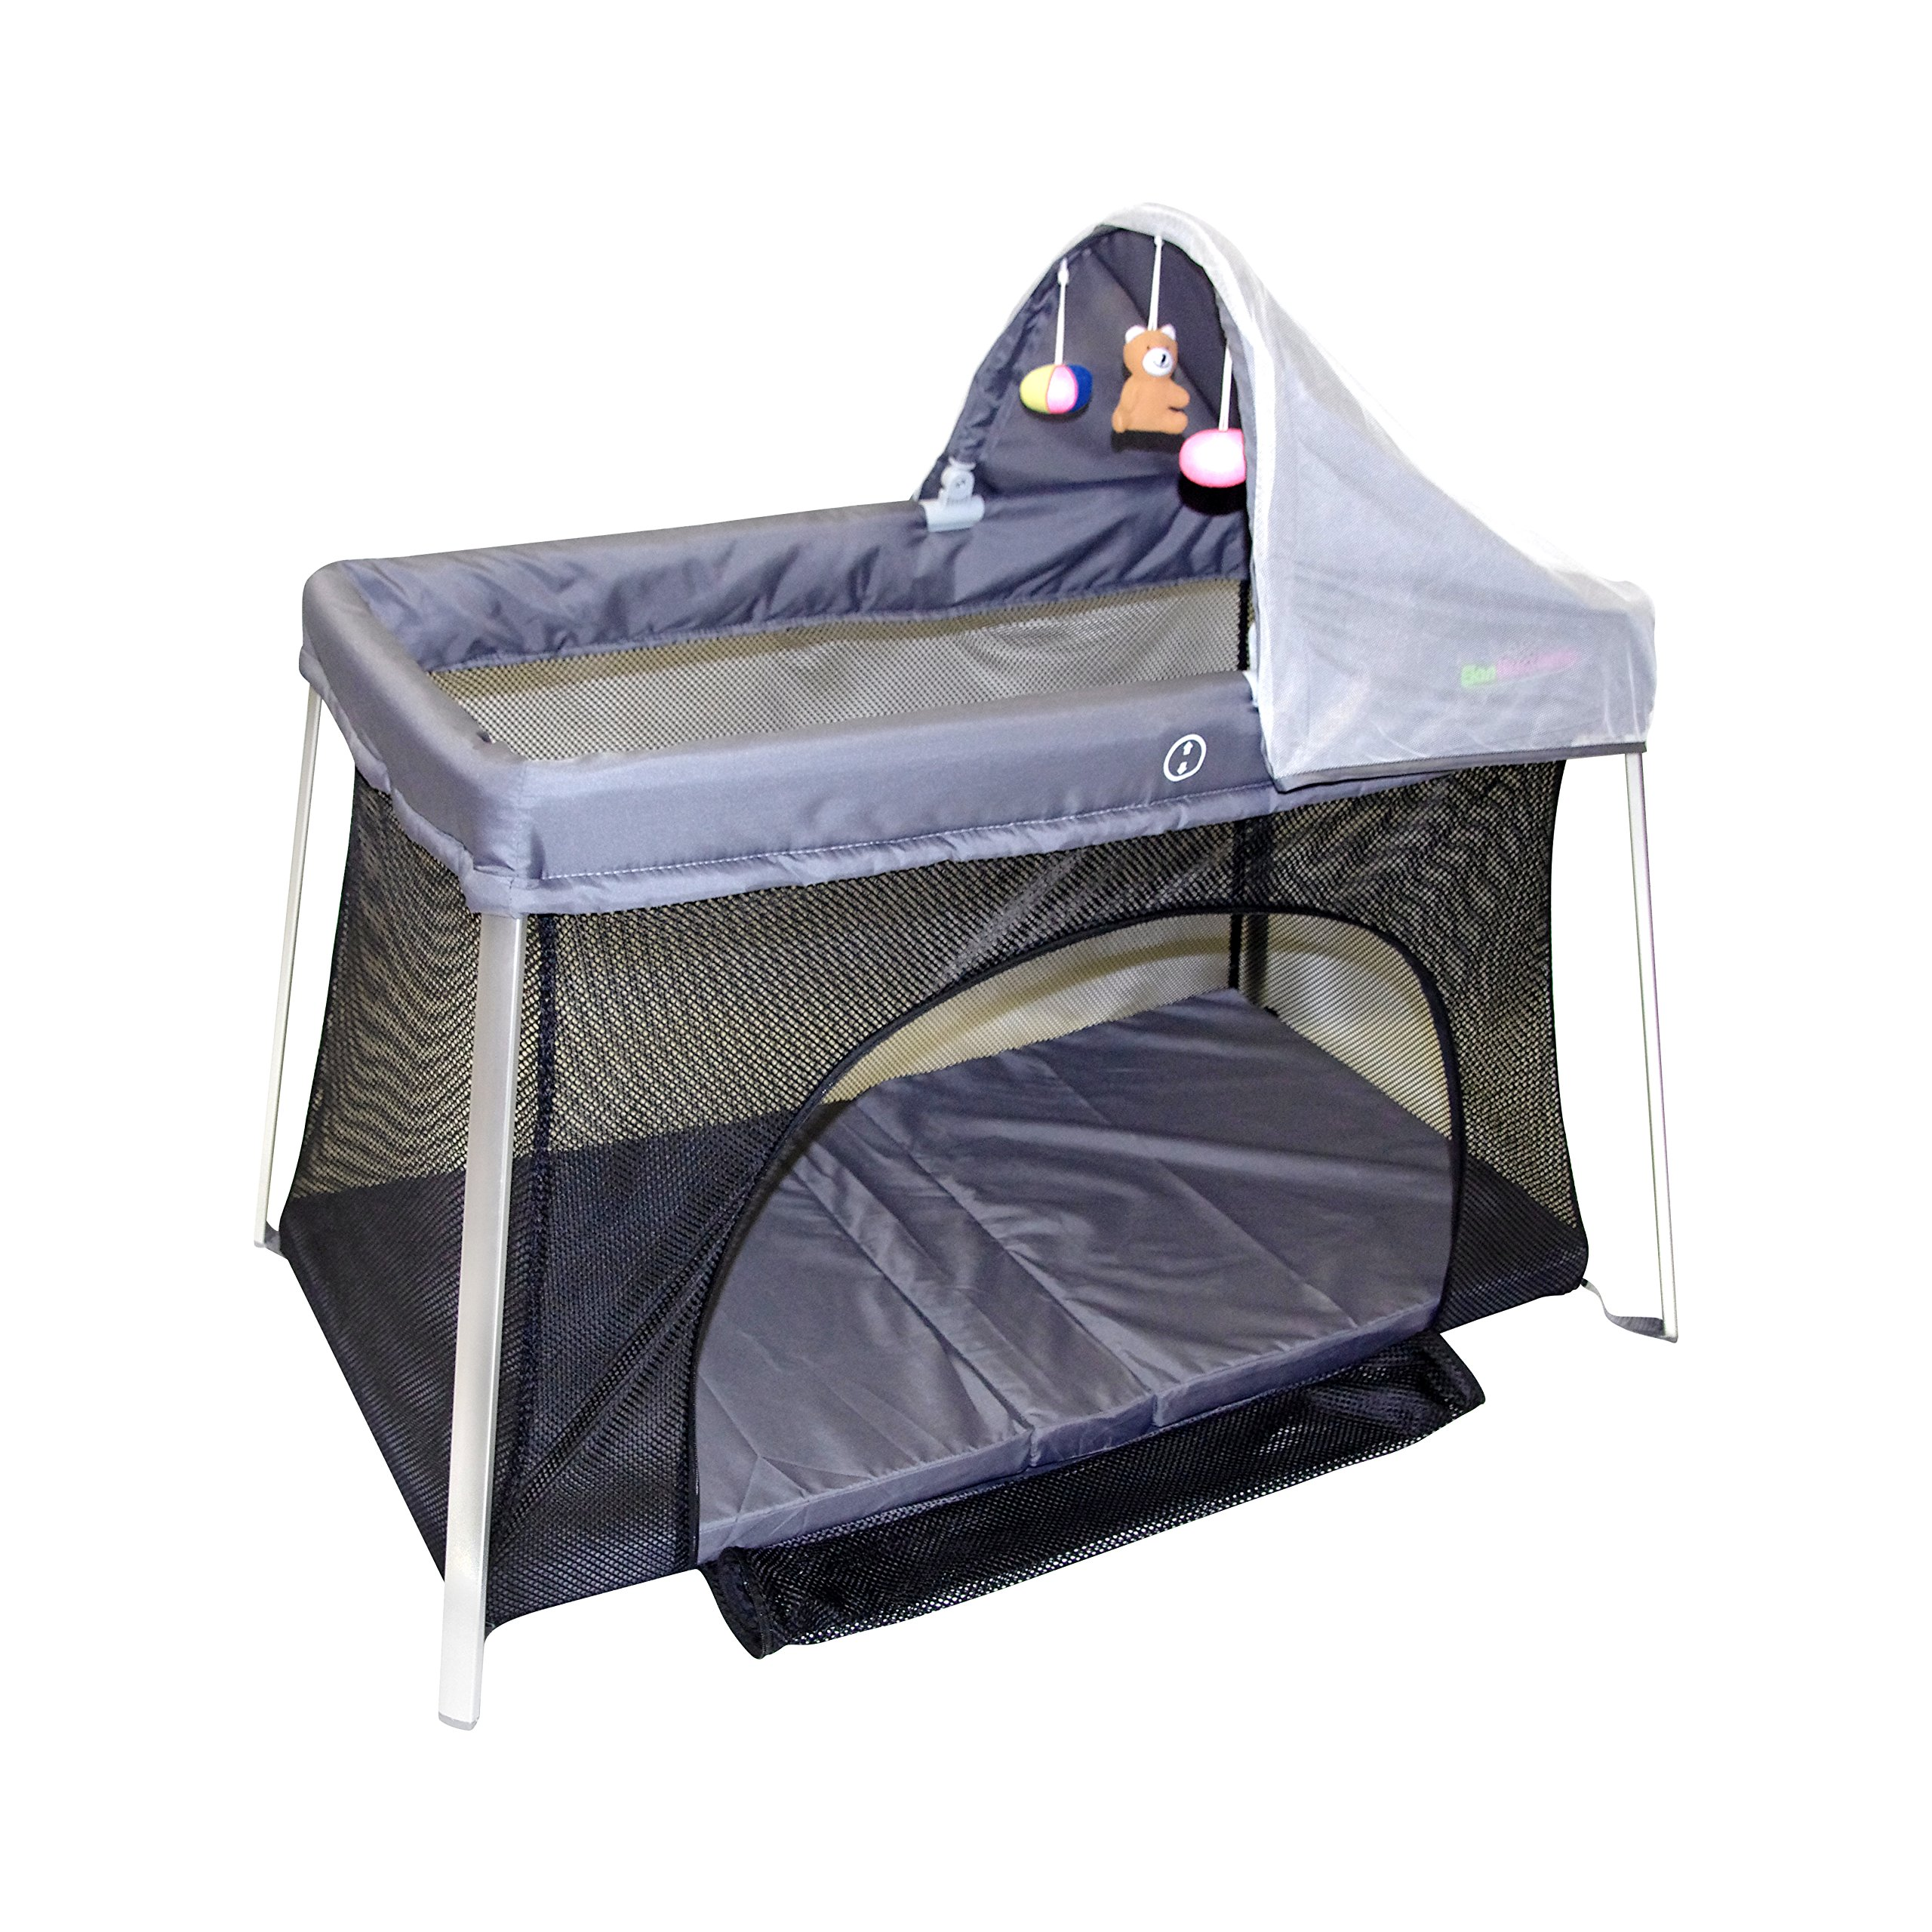 Portable Crib - Front And Top Baby Access With Sun Shade And Bug Canopy. Your Home And Travel Crib. Easy Set Up And Take Down. Useful Cribs For All New Mothers And Mothers To Be. by ElanBambino